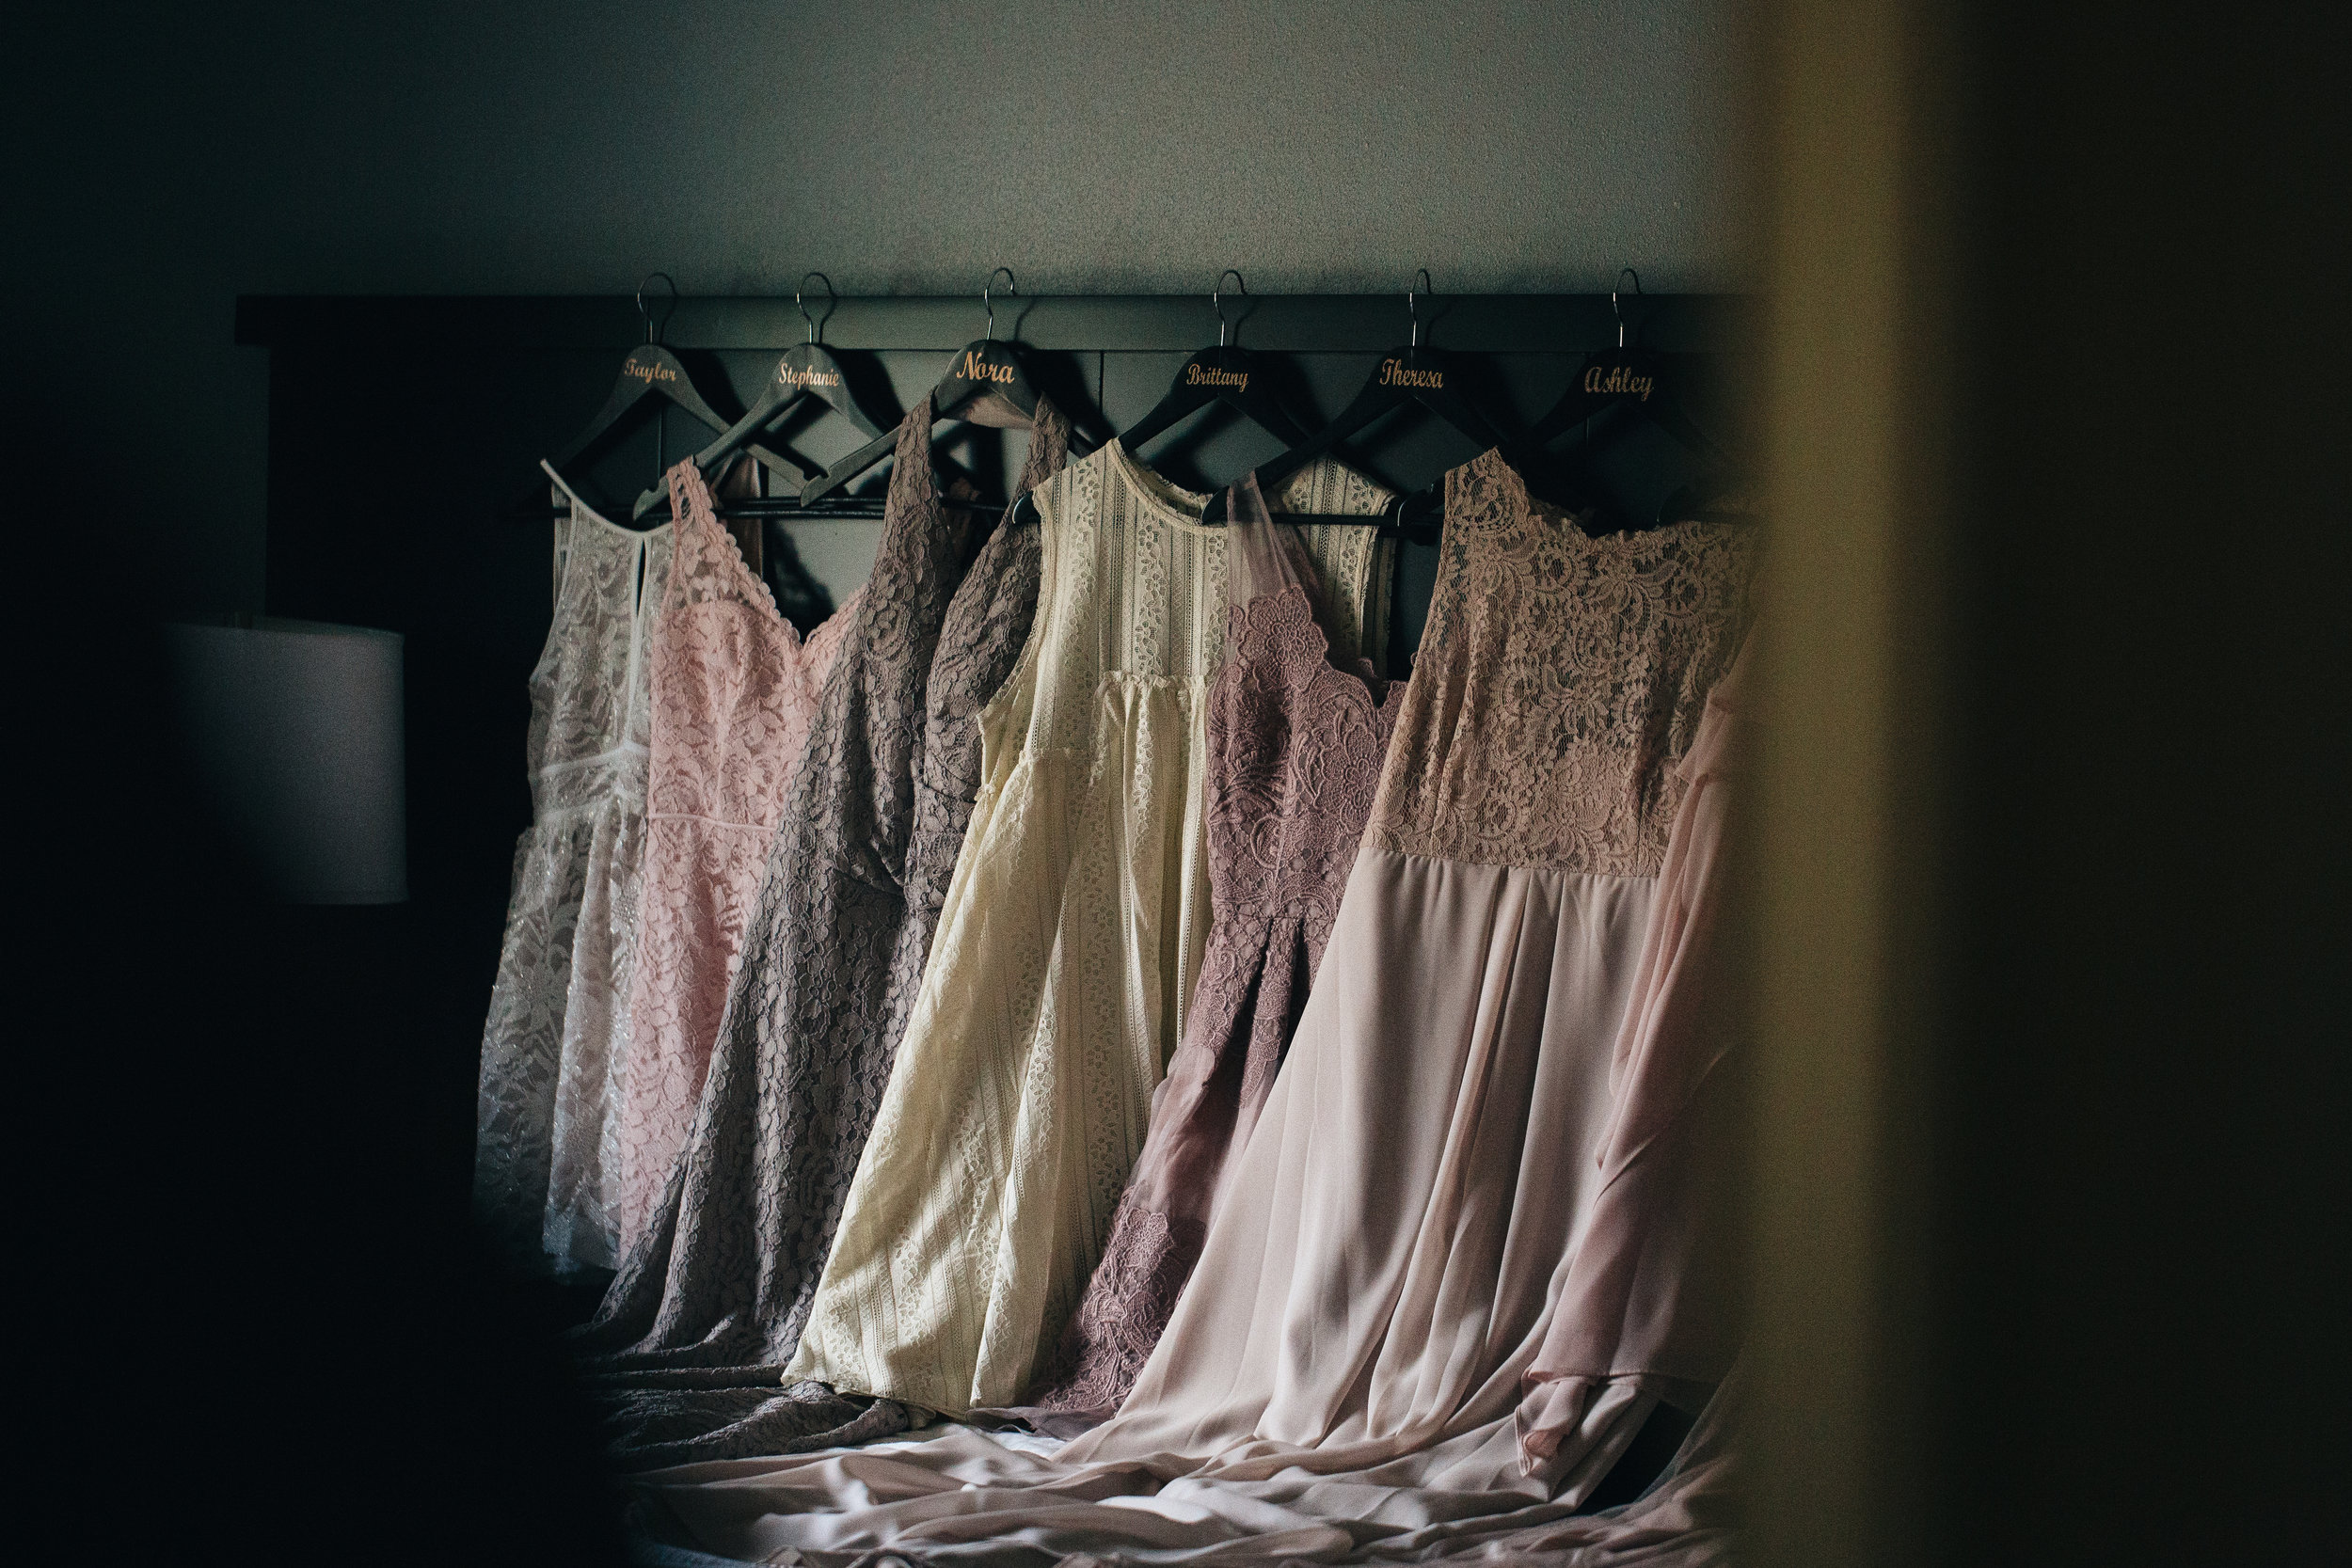 Bridesmaids dresses in different neutral and blush tones.